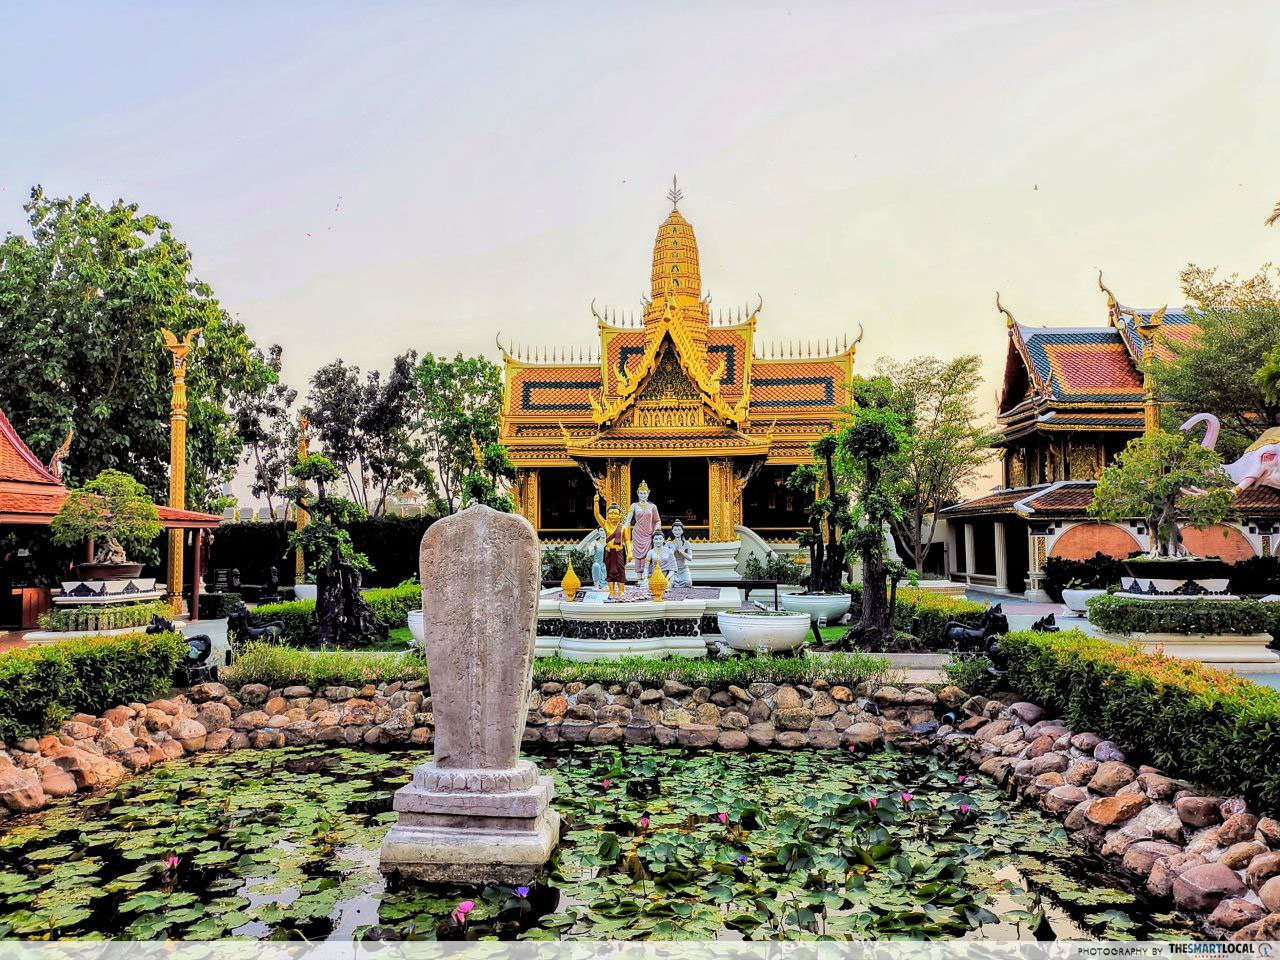 IG-Worthy spots at Thailand's Ancient City